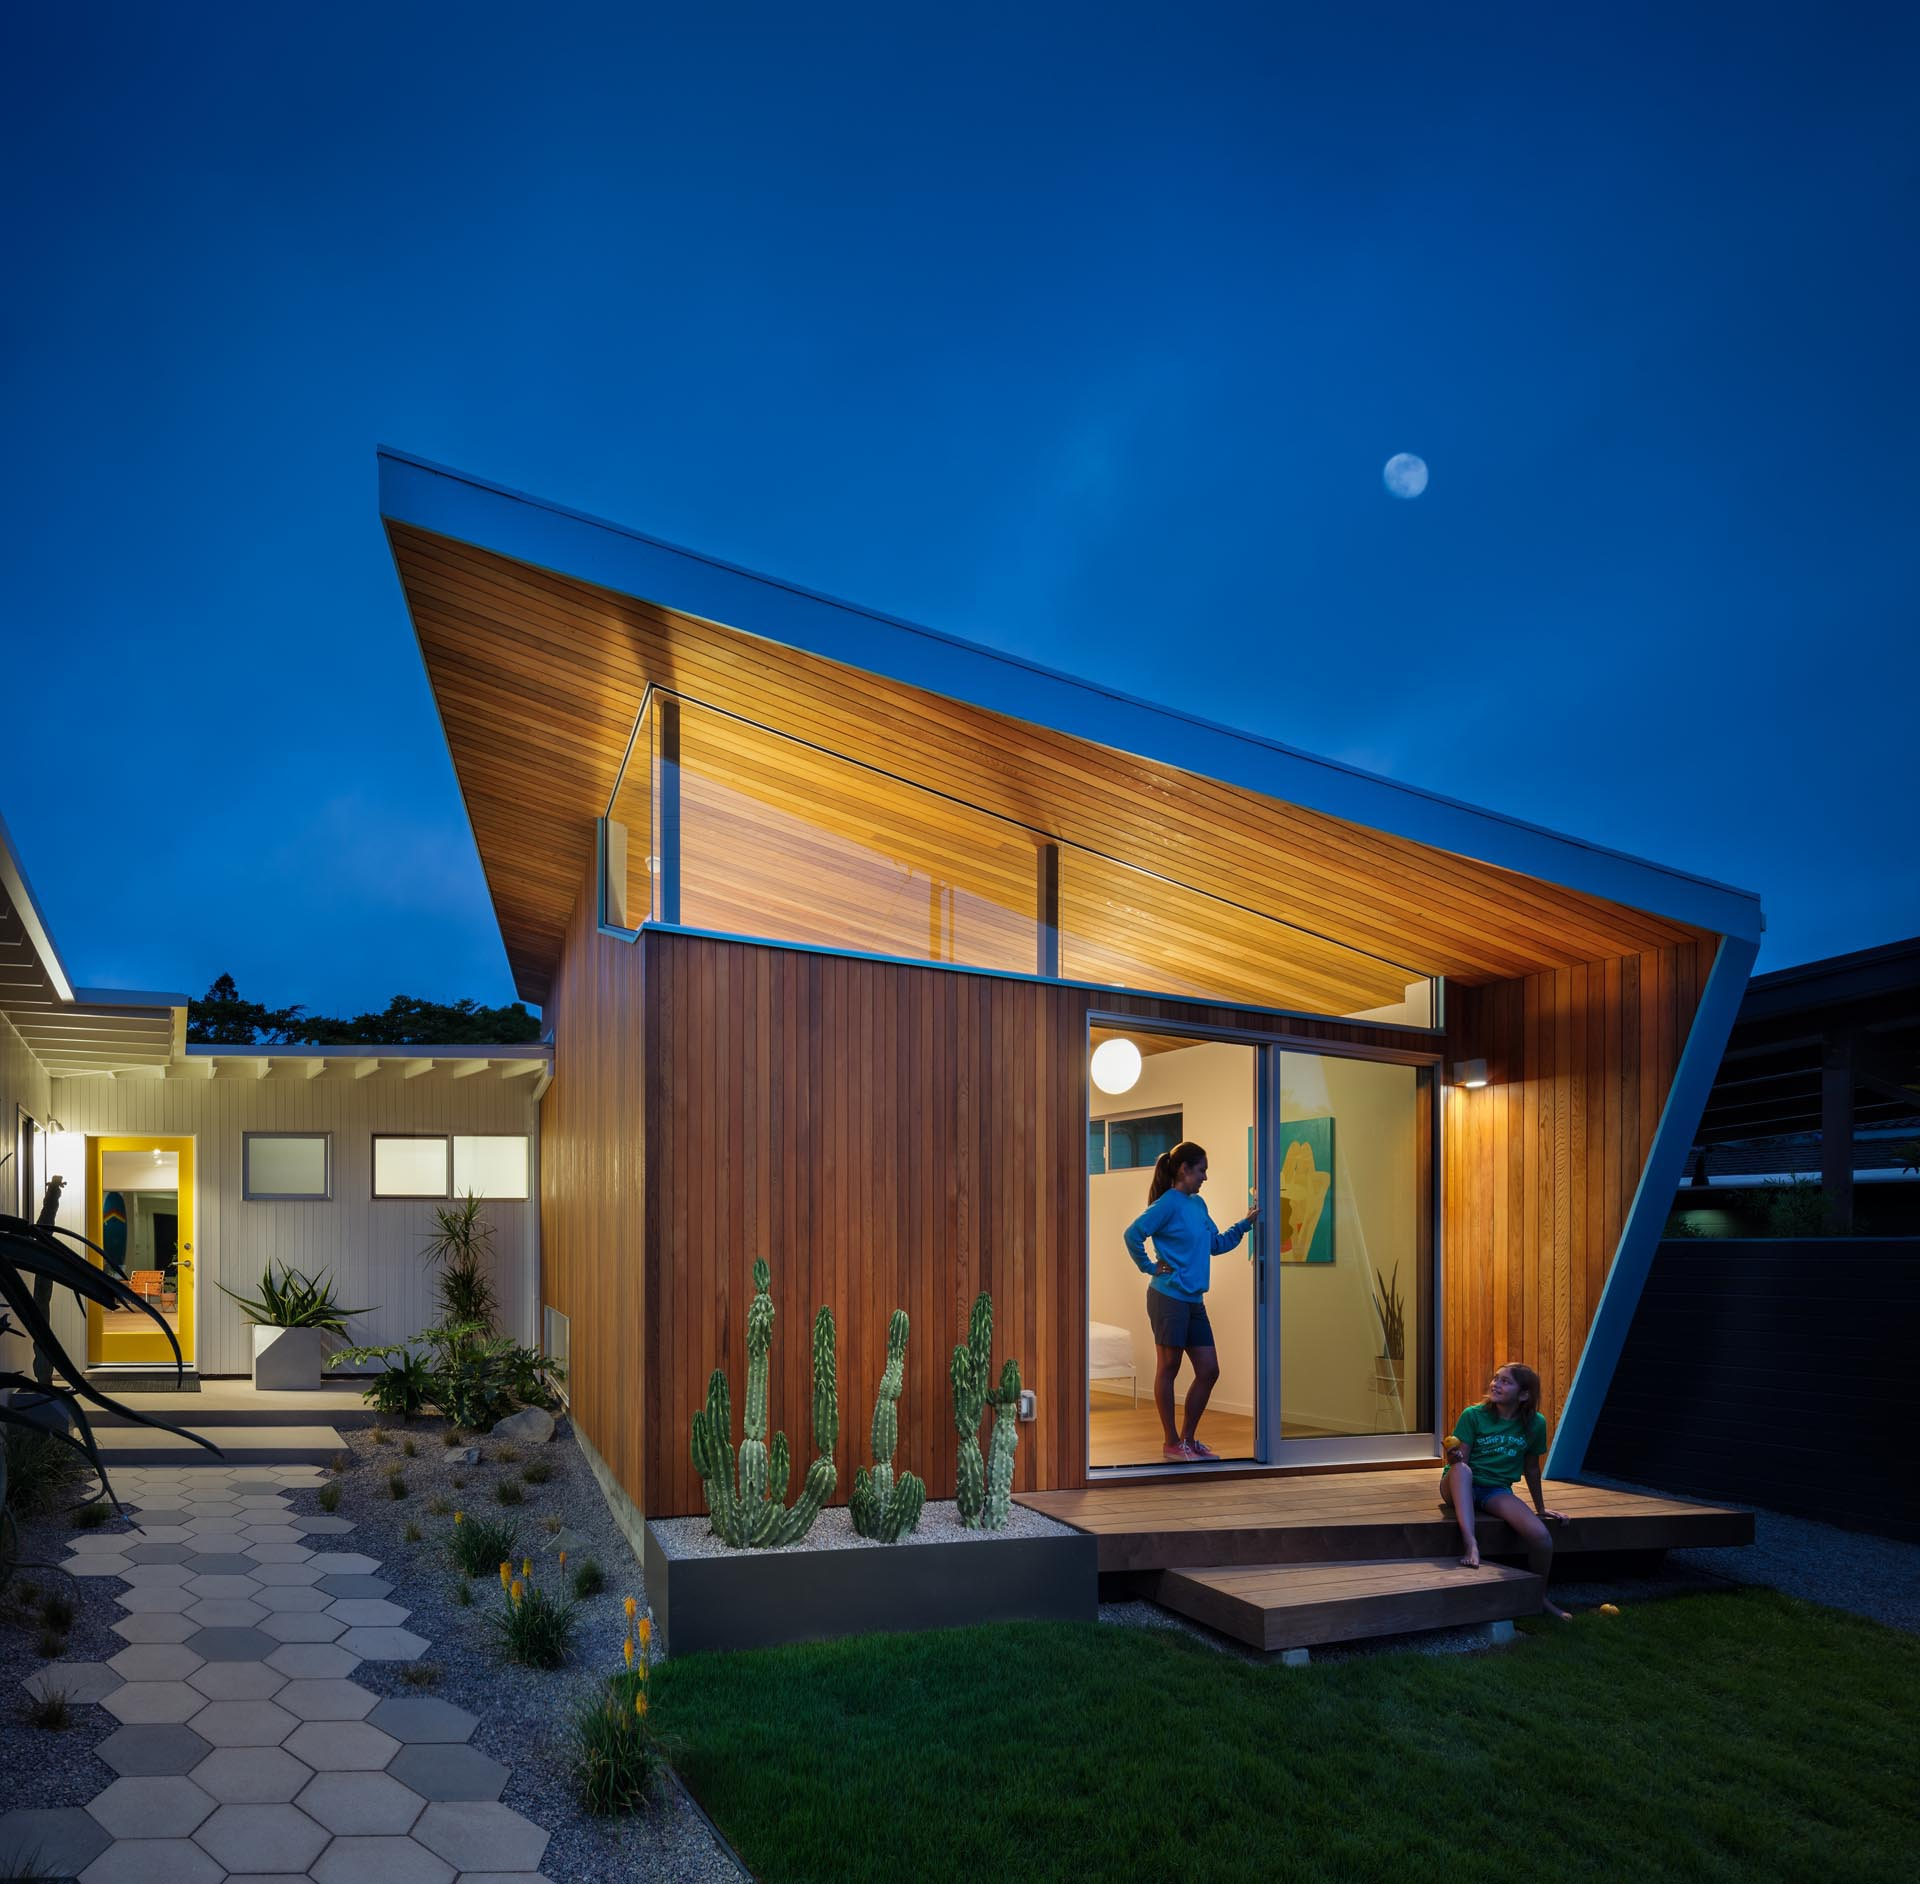 The updated exterior of this mid-century modern home showcases more usable green space and a permeable grass driveway, while an all new pavilion stands out by the tall-angled roofline with blue accents, and hexagonal pavers lead to the yellow front door.